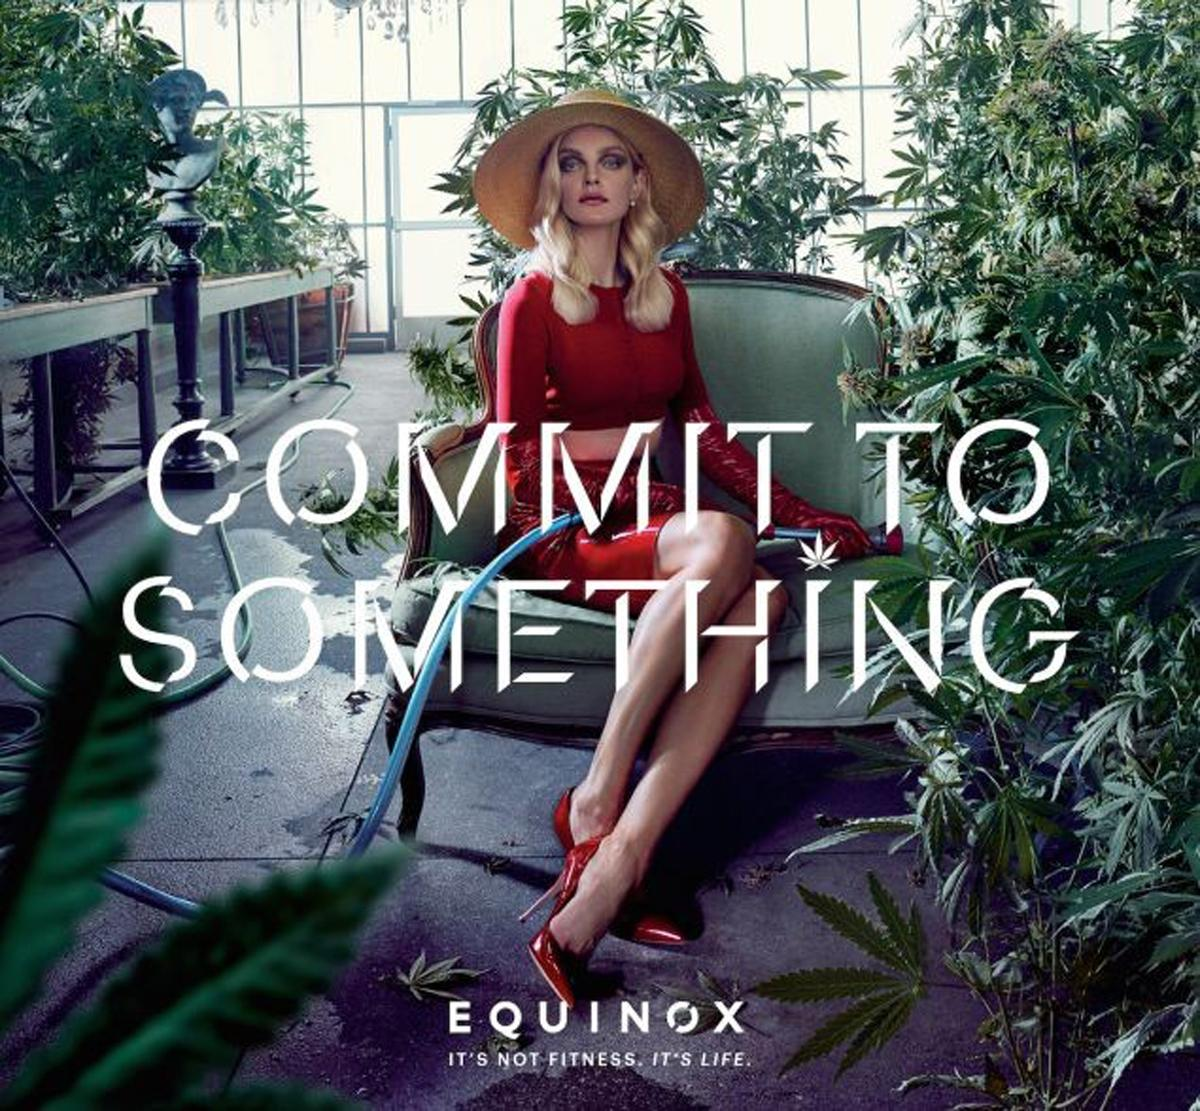 A picture of a woman cultivating cannabis - legal in some US states, but illegal in others – is part of the gym brand's advertising campaign